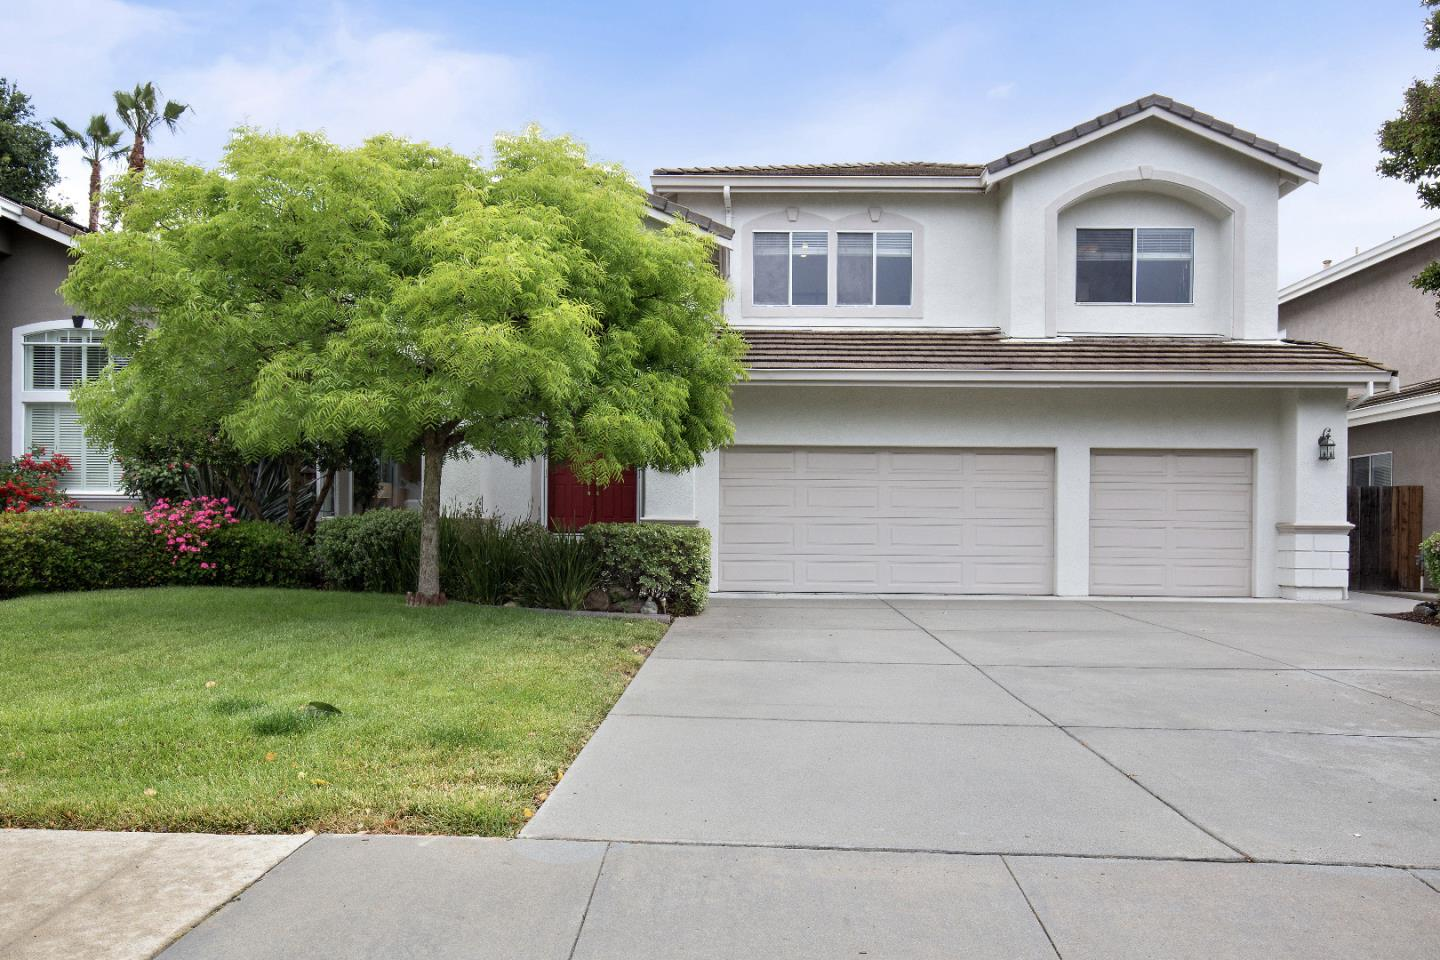 Property for sale at 6158 Mancuso ST, San Jose,  California 95120